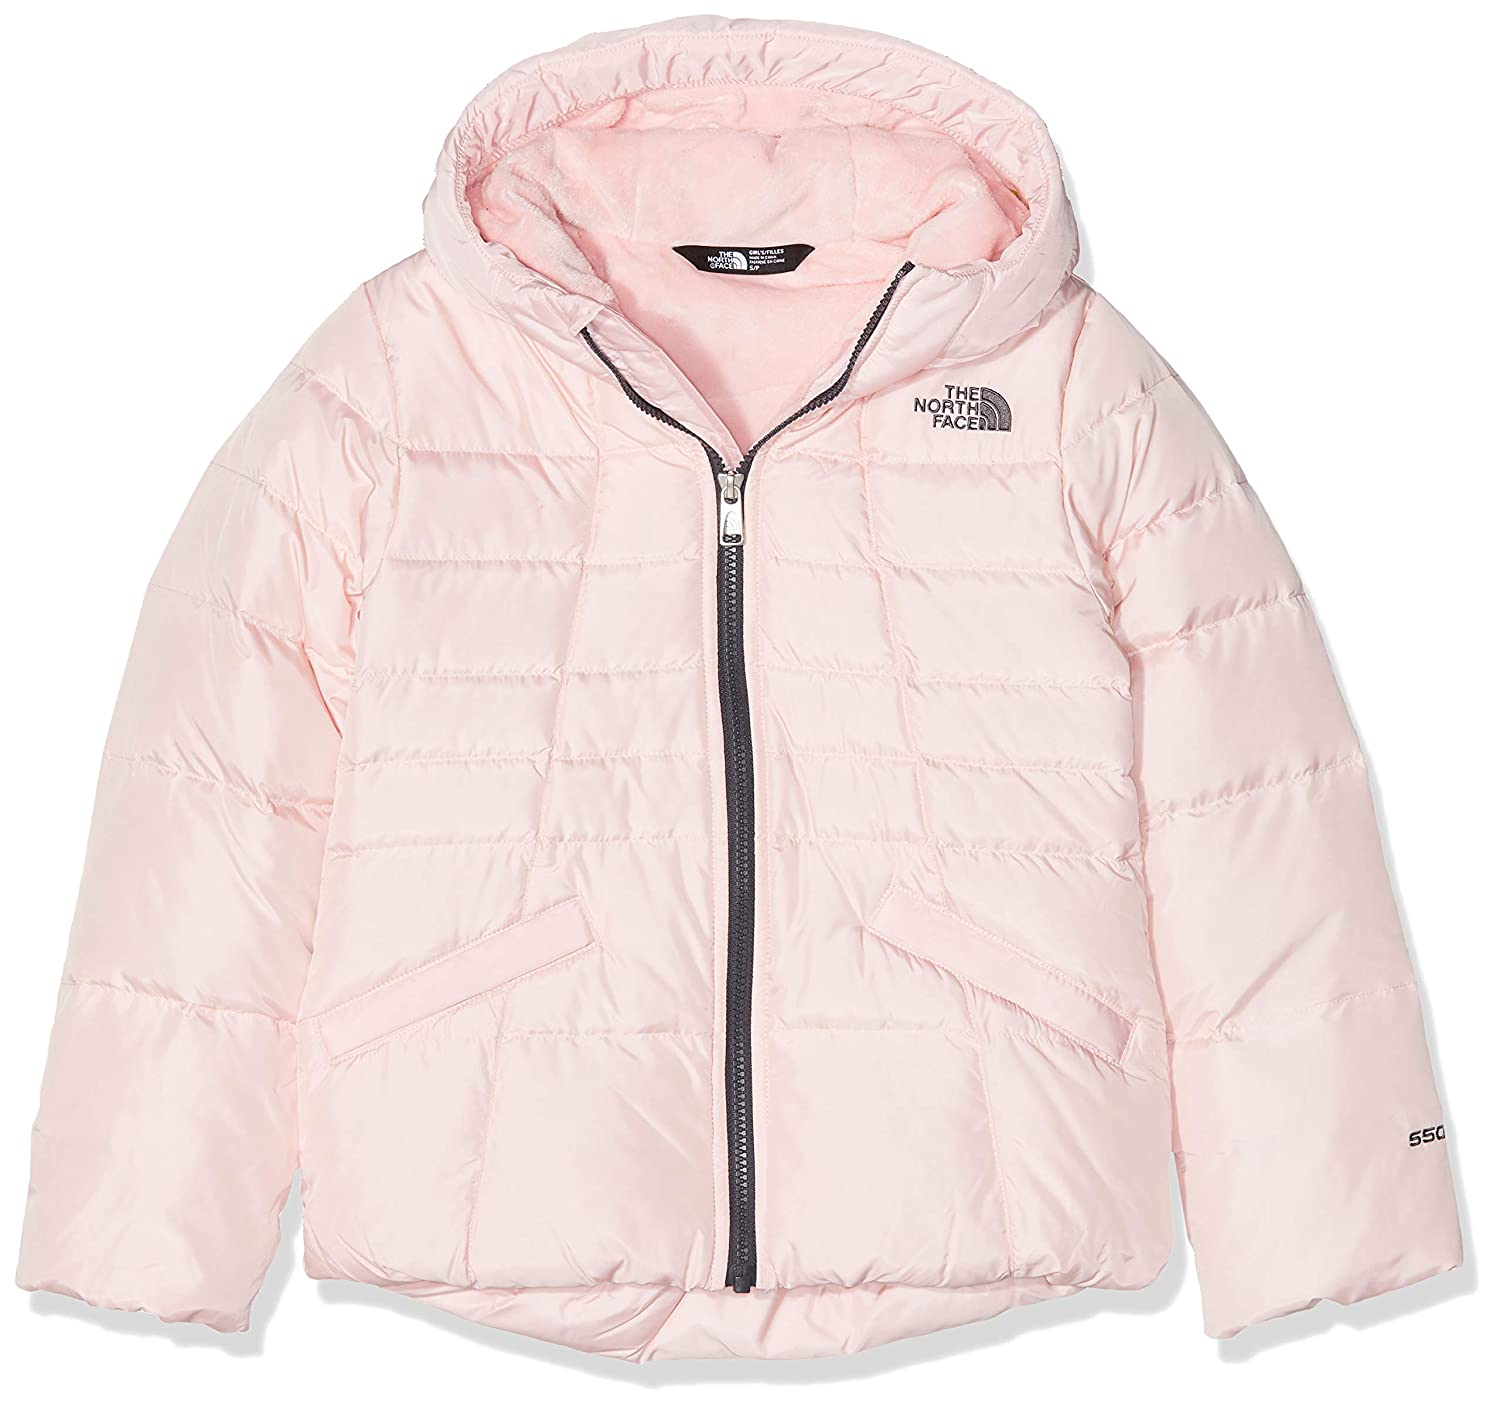 THE NORTH FACE Moondoggy 2.0 Veste à Capuche Fille, Purdy rose, FR   S (Taille Fabricant   S)